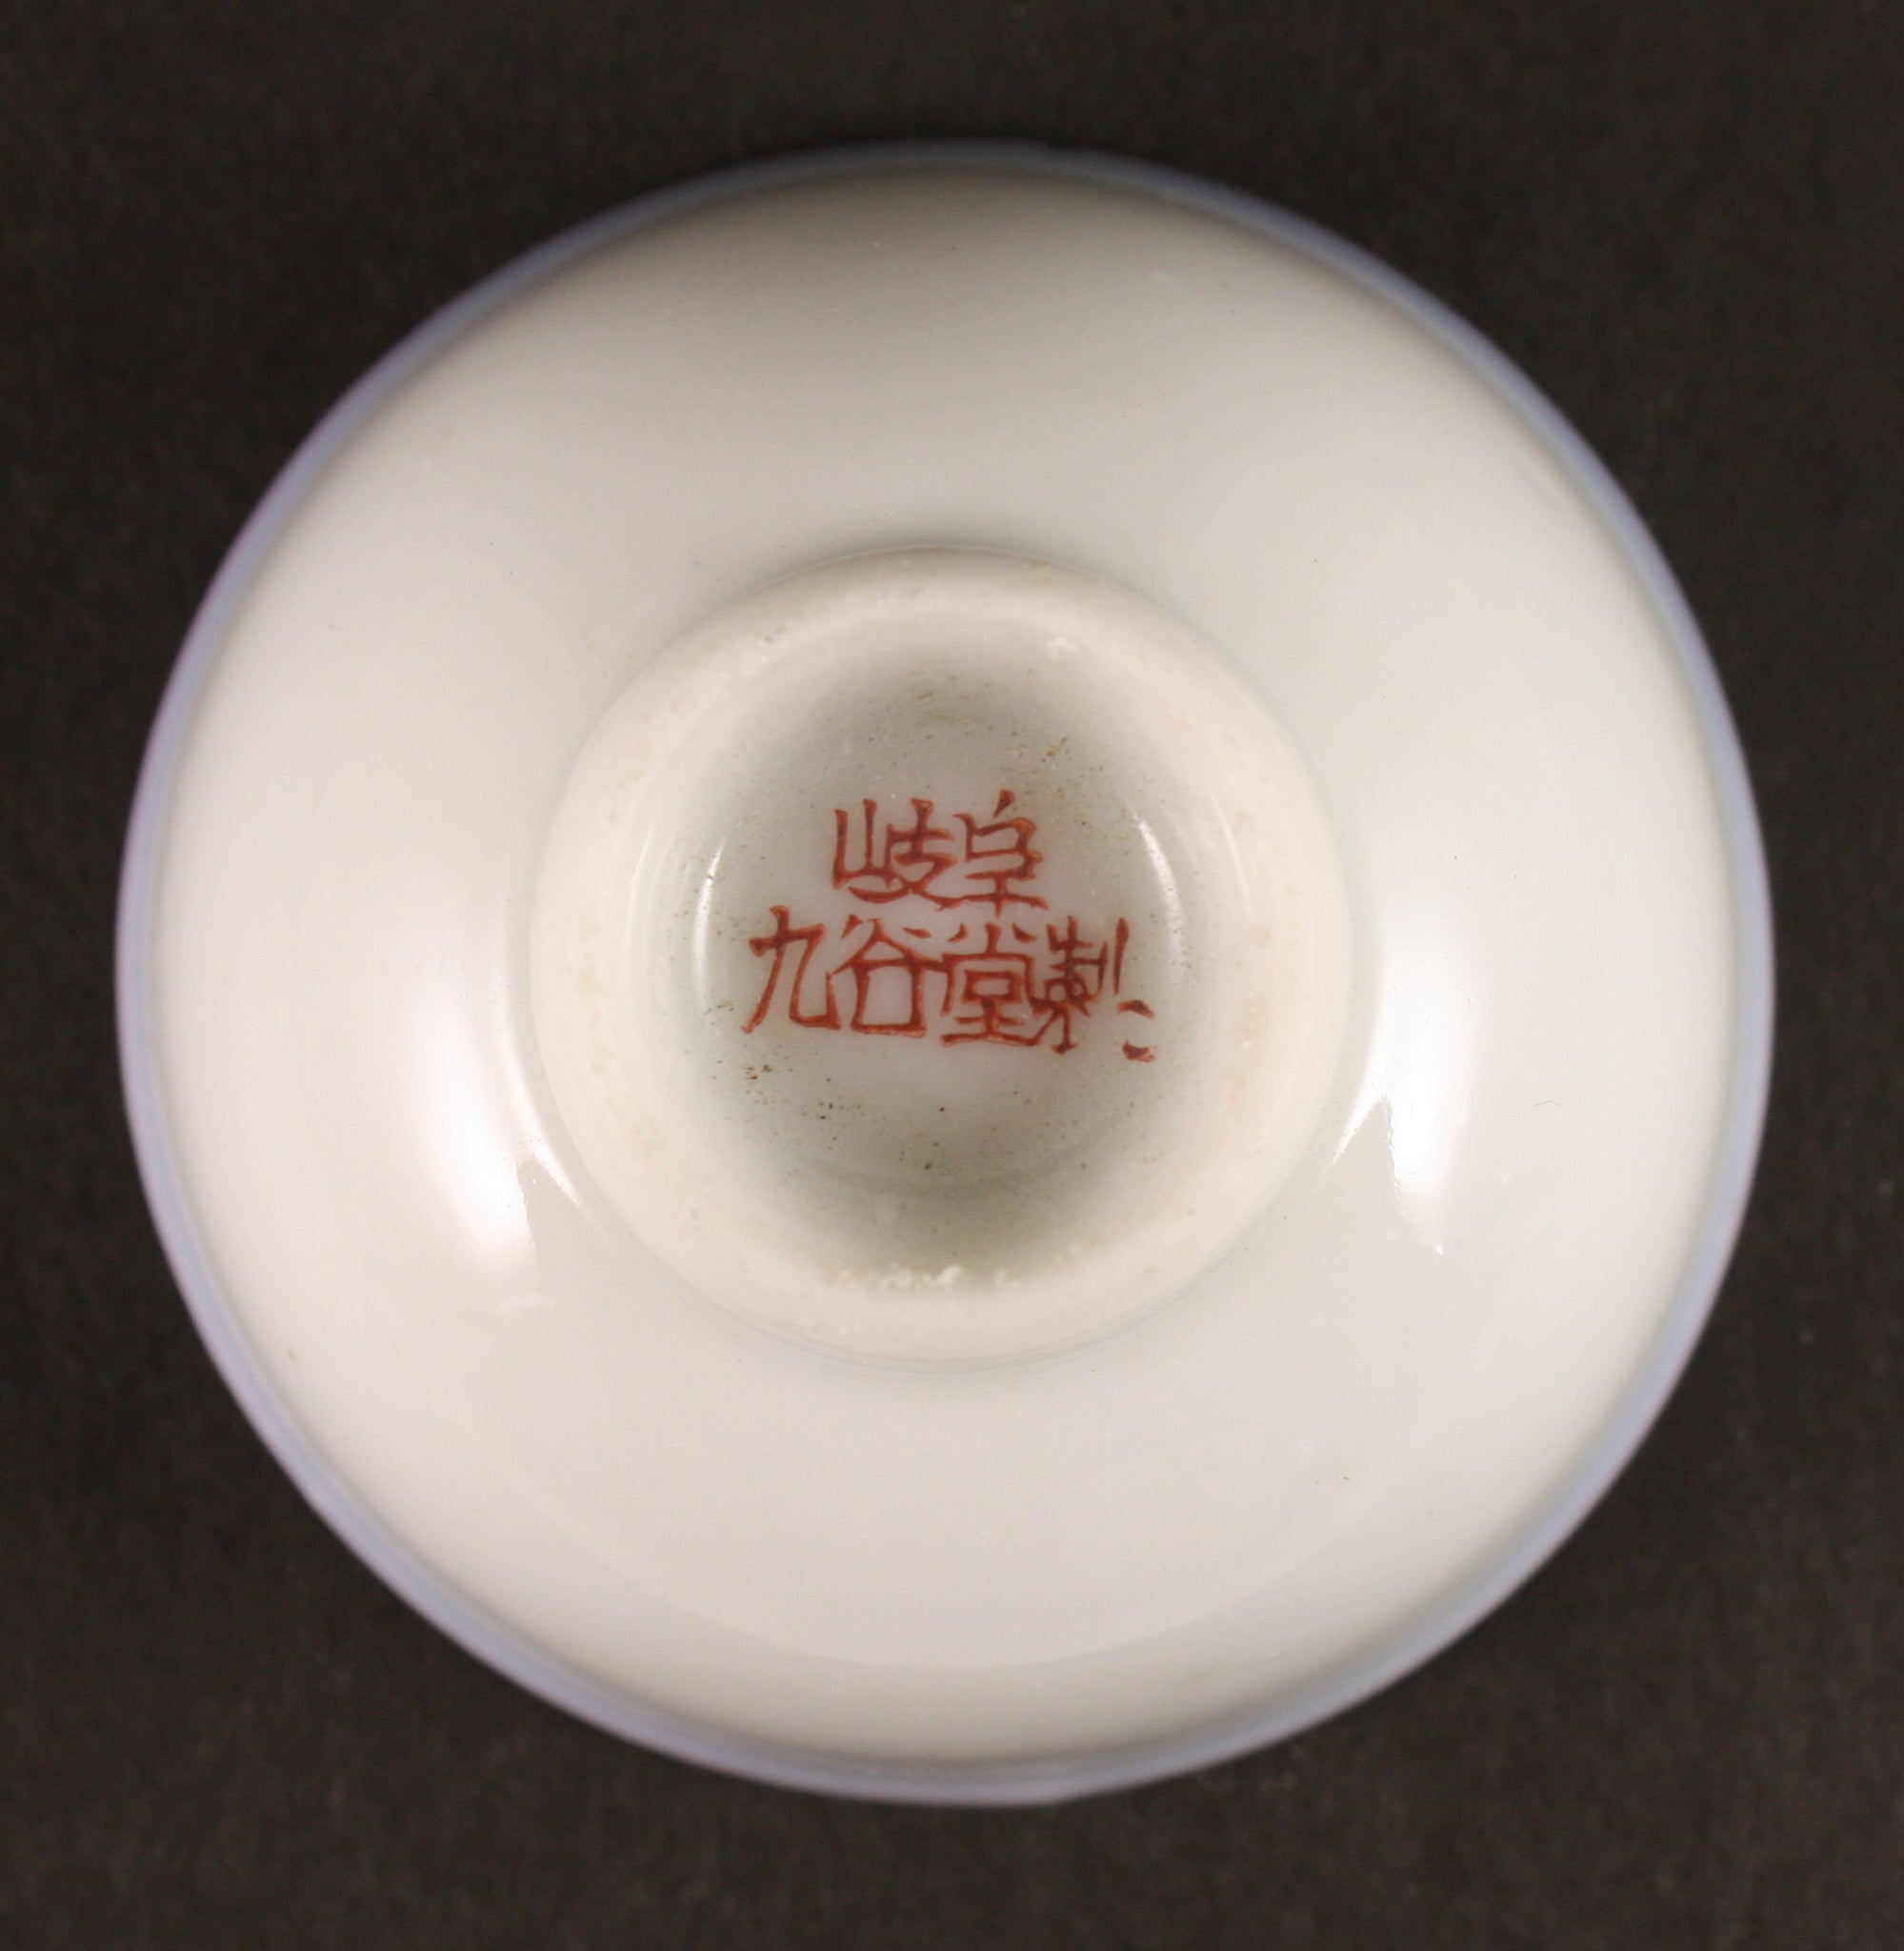 Antique Japanese Military 2nd Flying Corps Establishment Commemoration Army Sake Cup